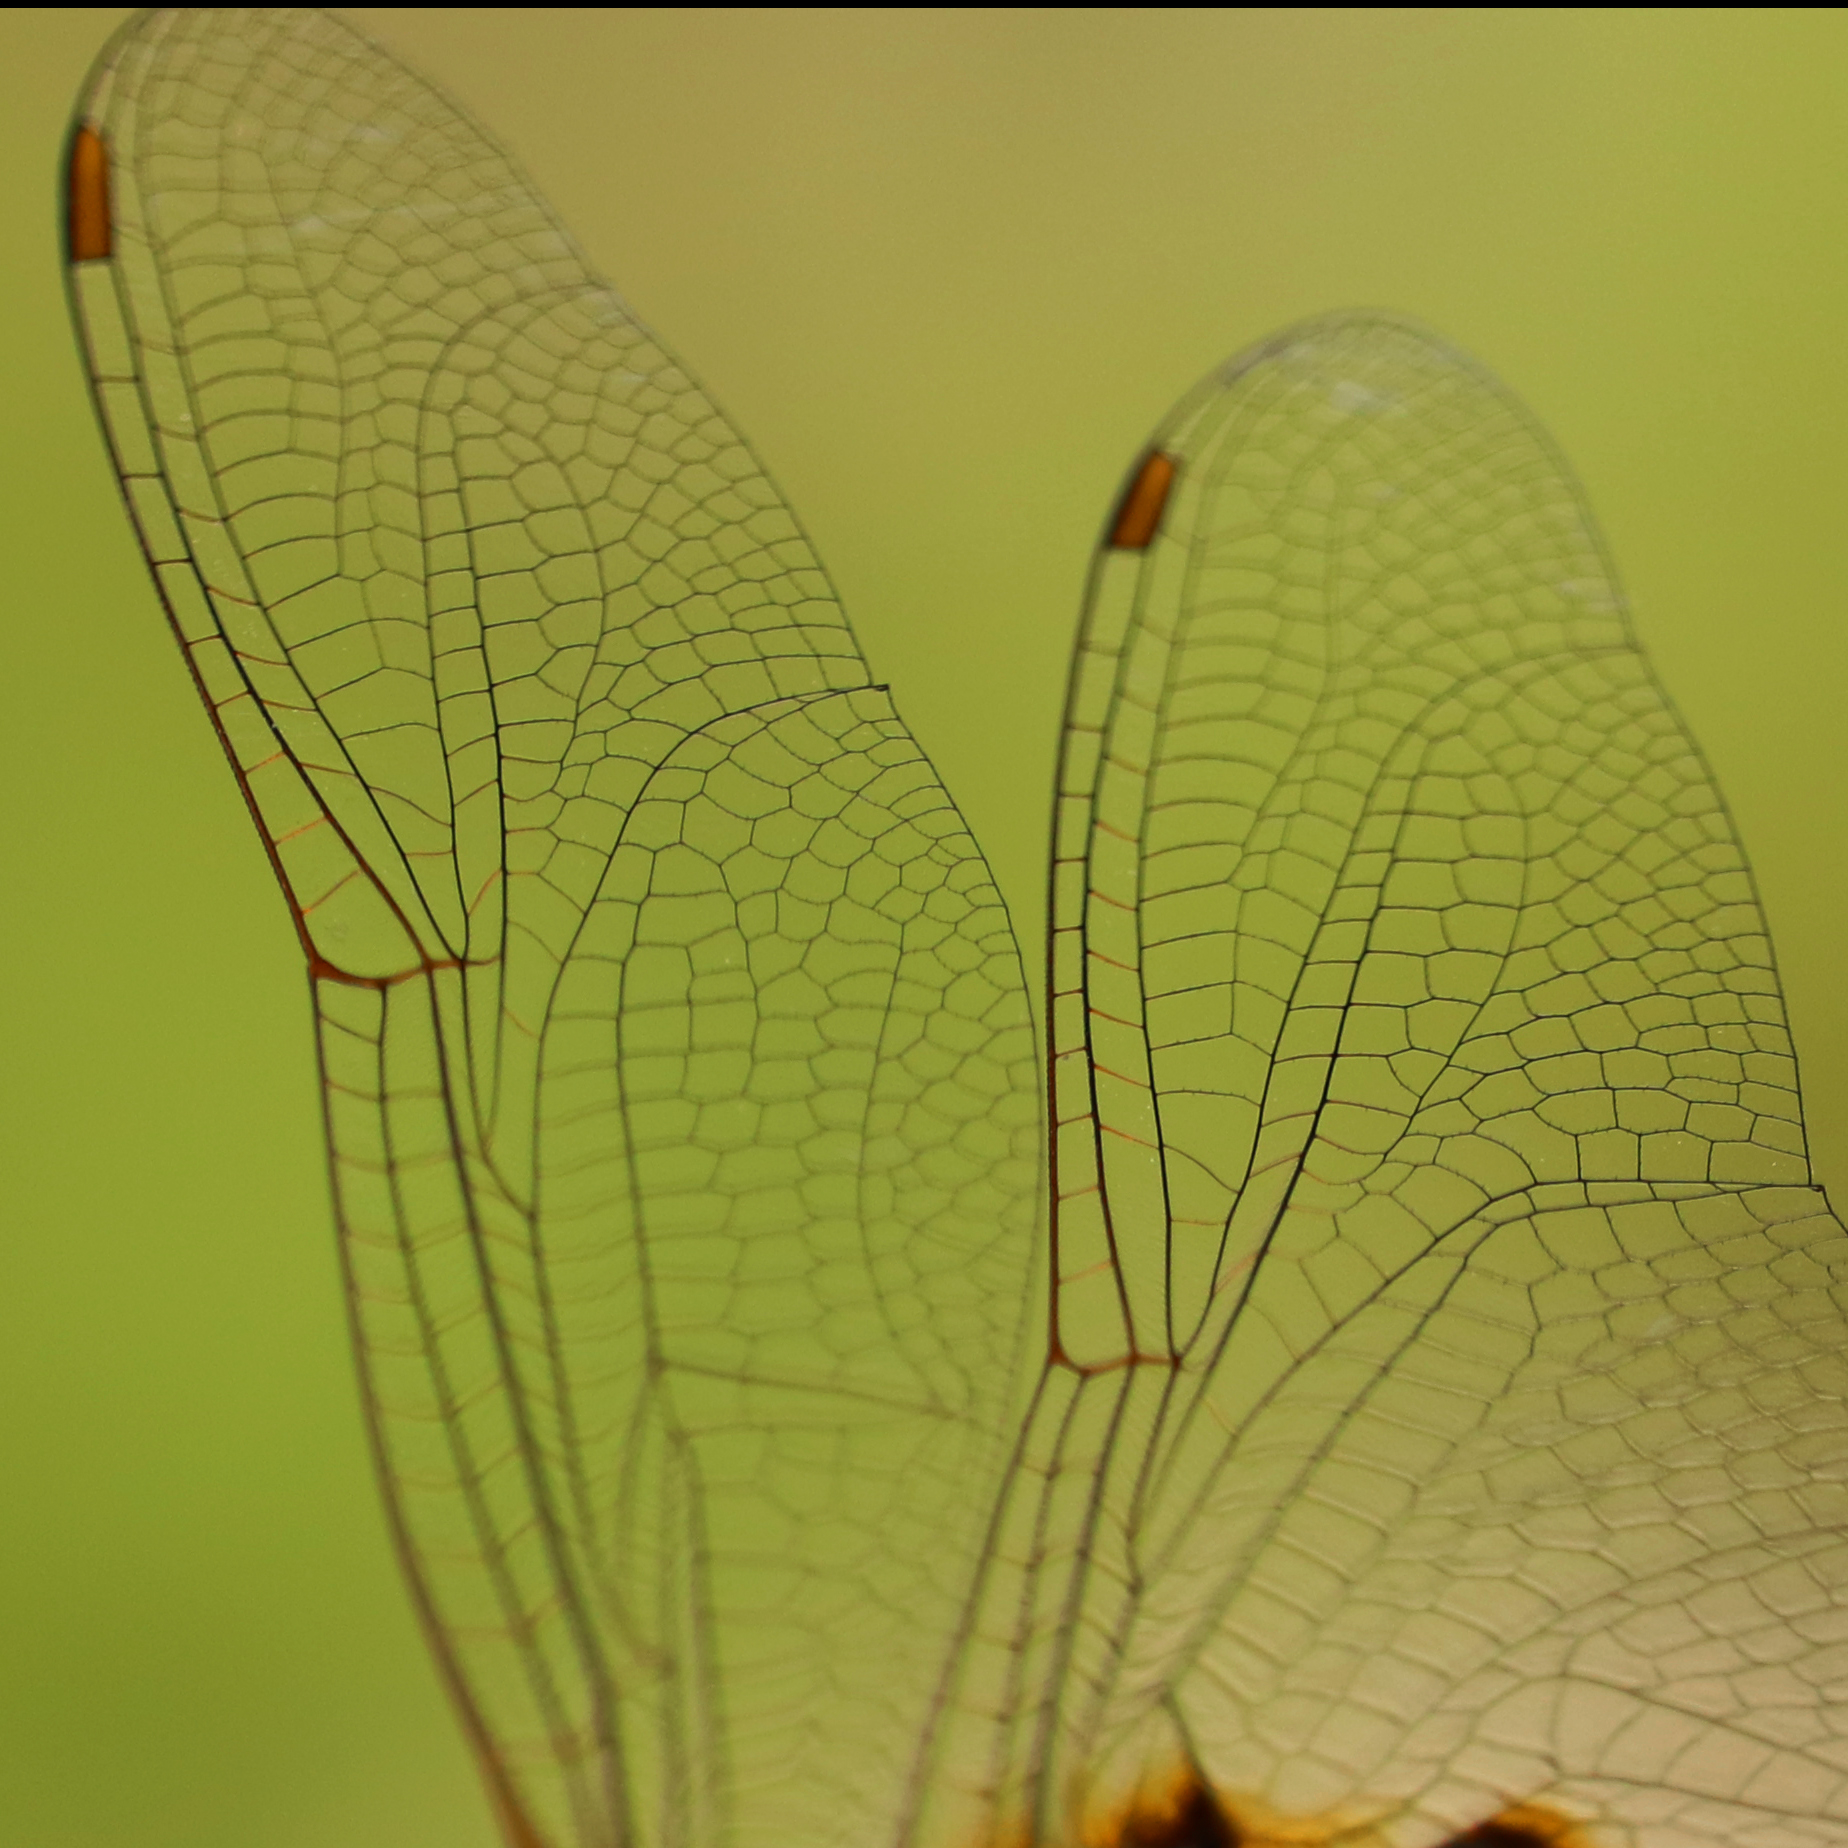 Wings of a dragonfly in close-up